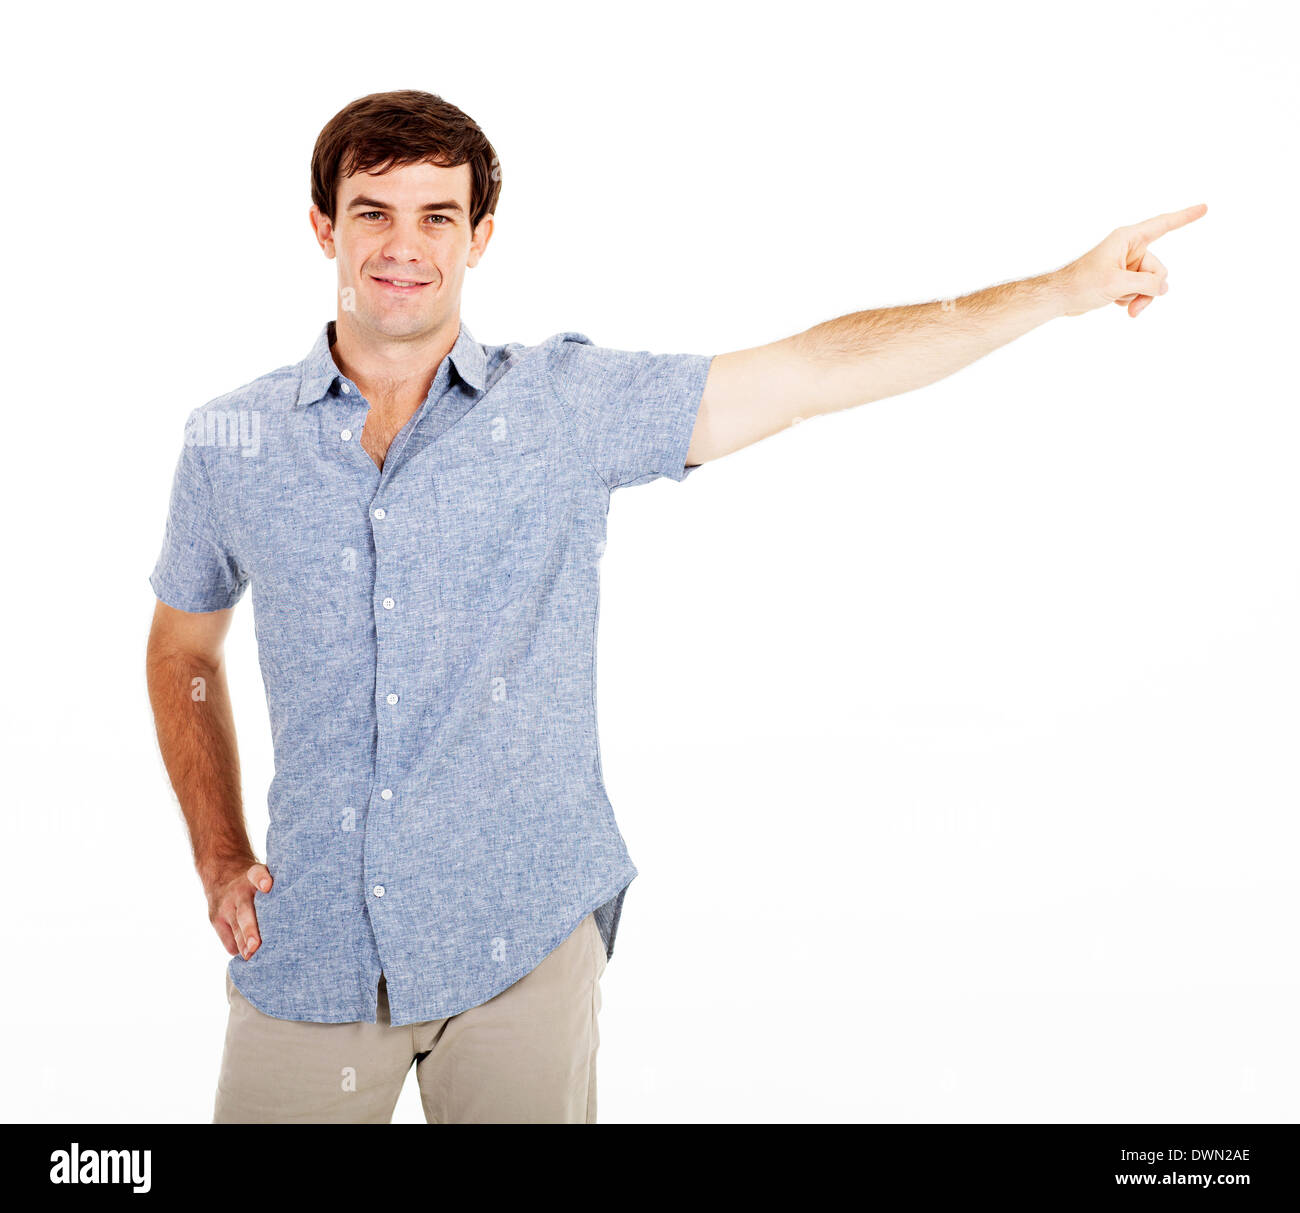 young man pointing on white background - Stock Image